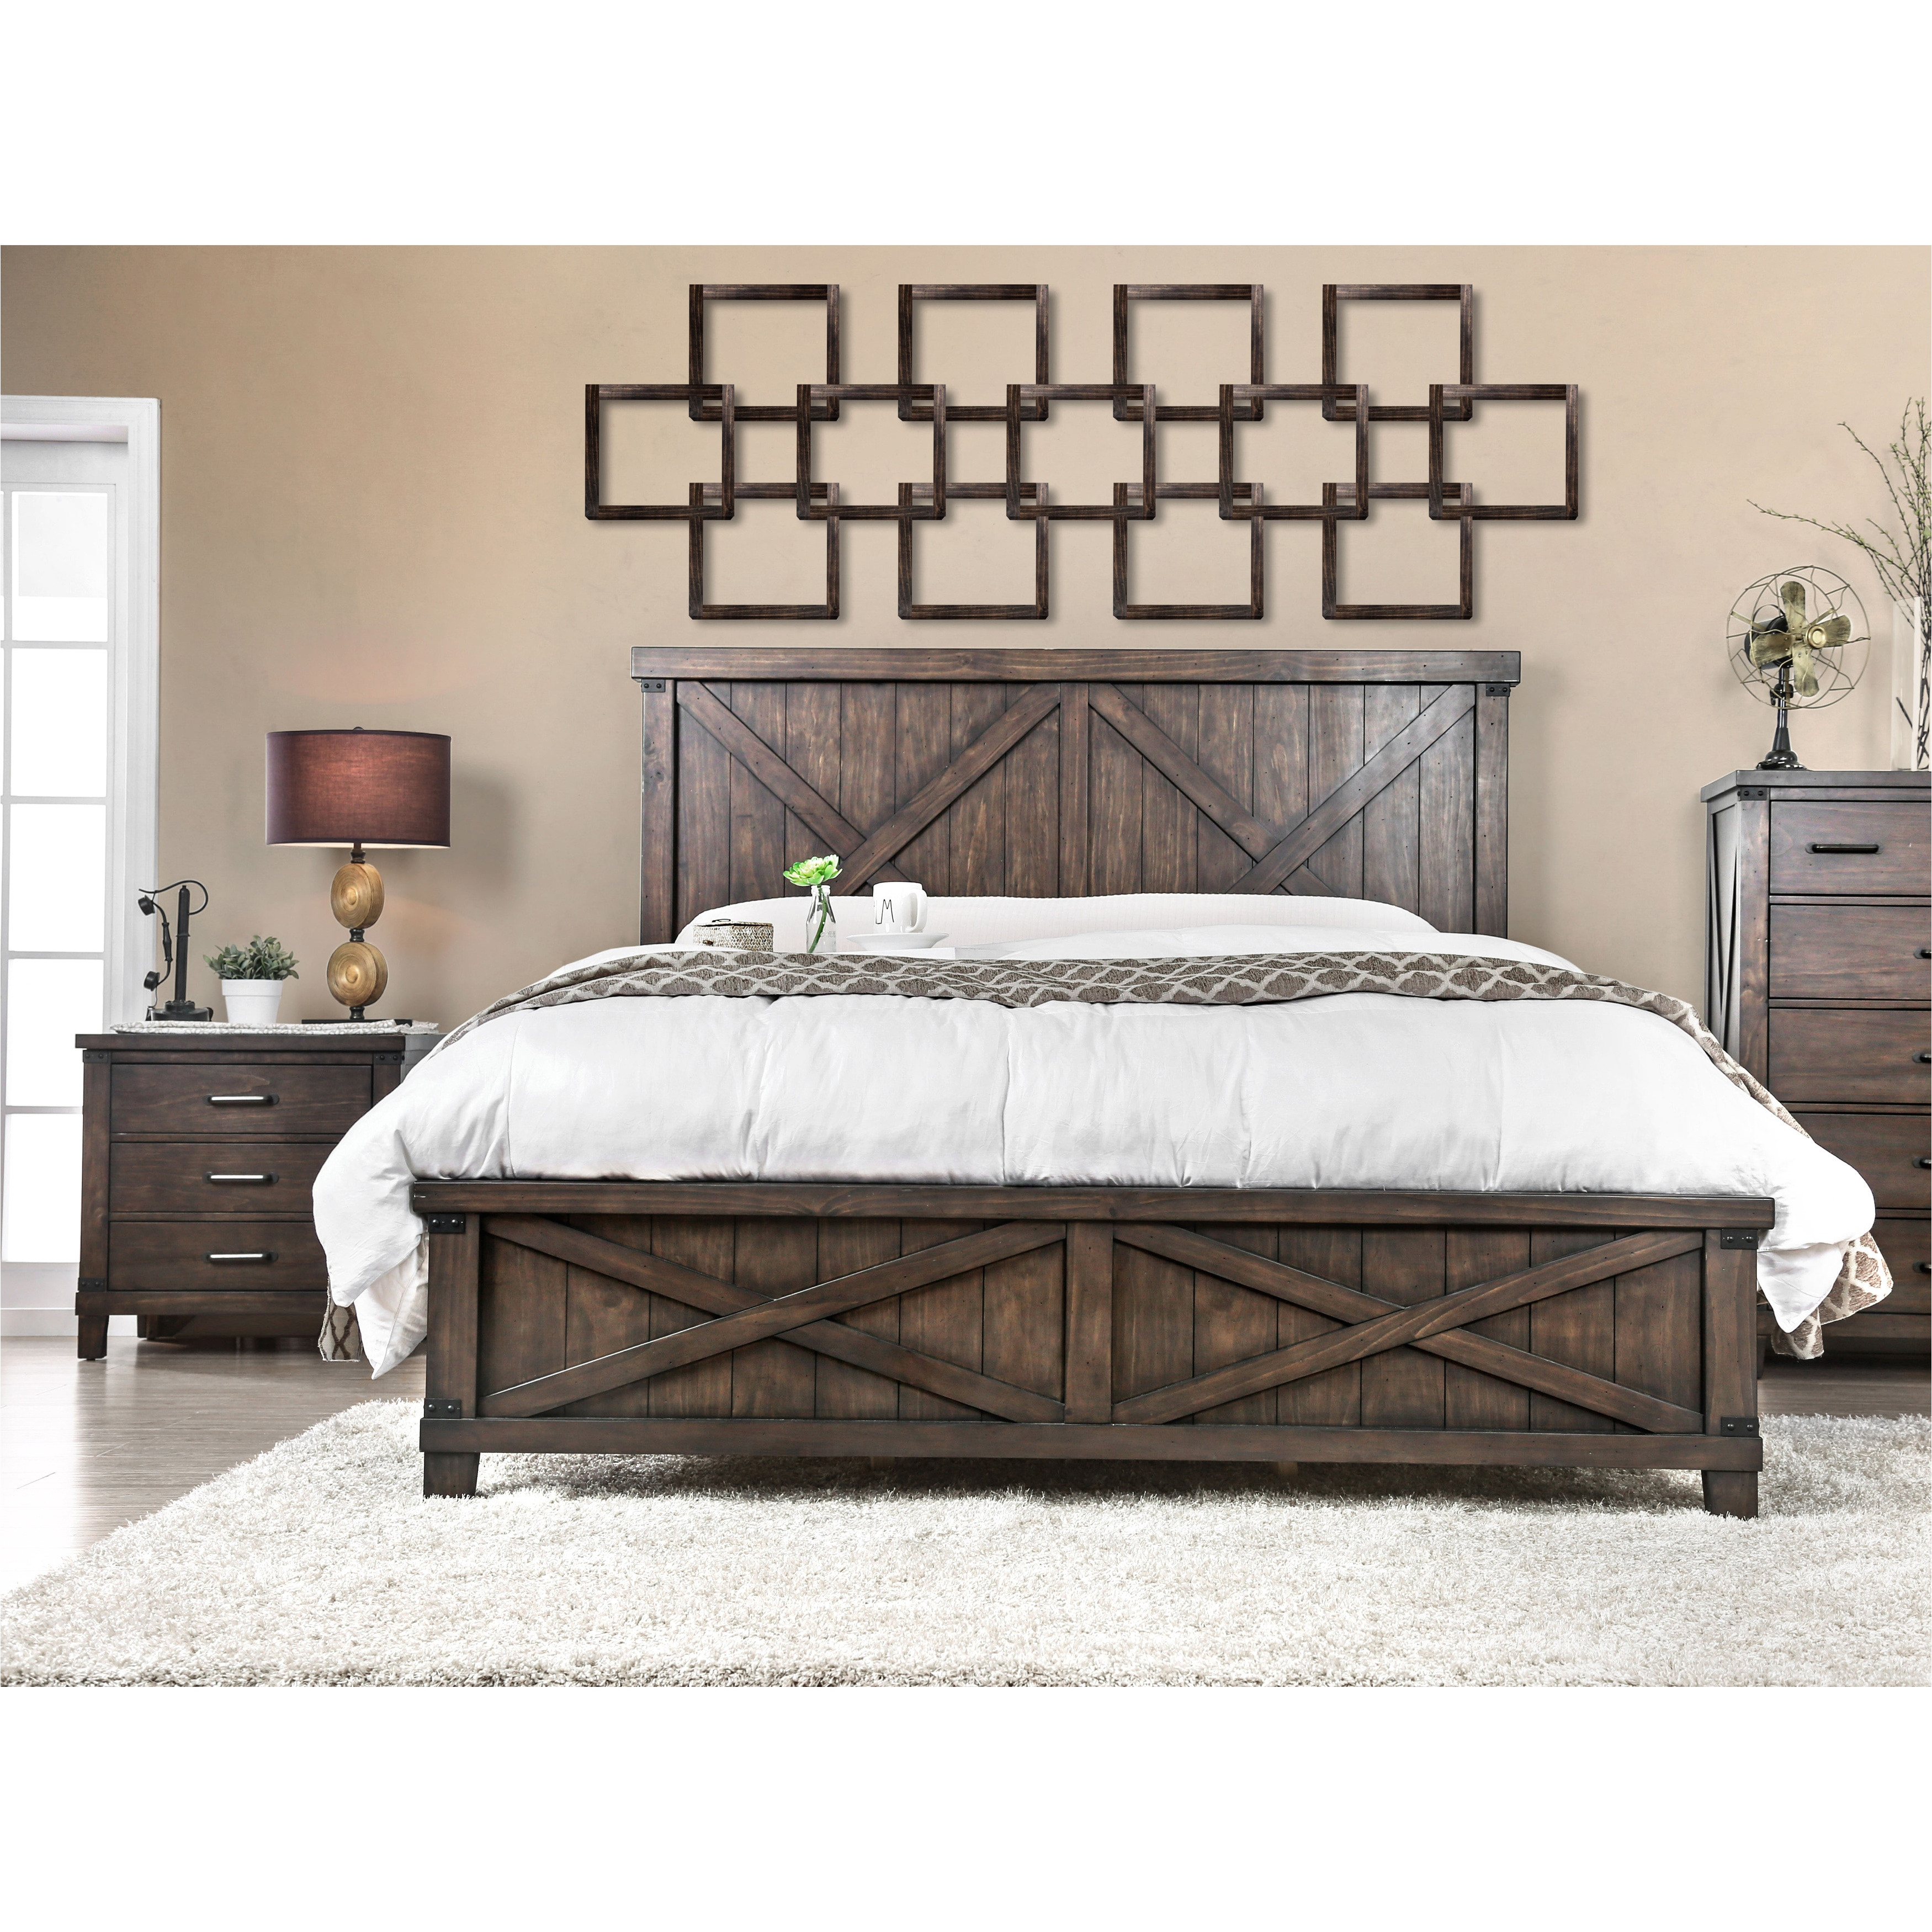 decorative granite top bedroom furniture in ashley furniture four poster bed